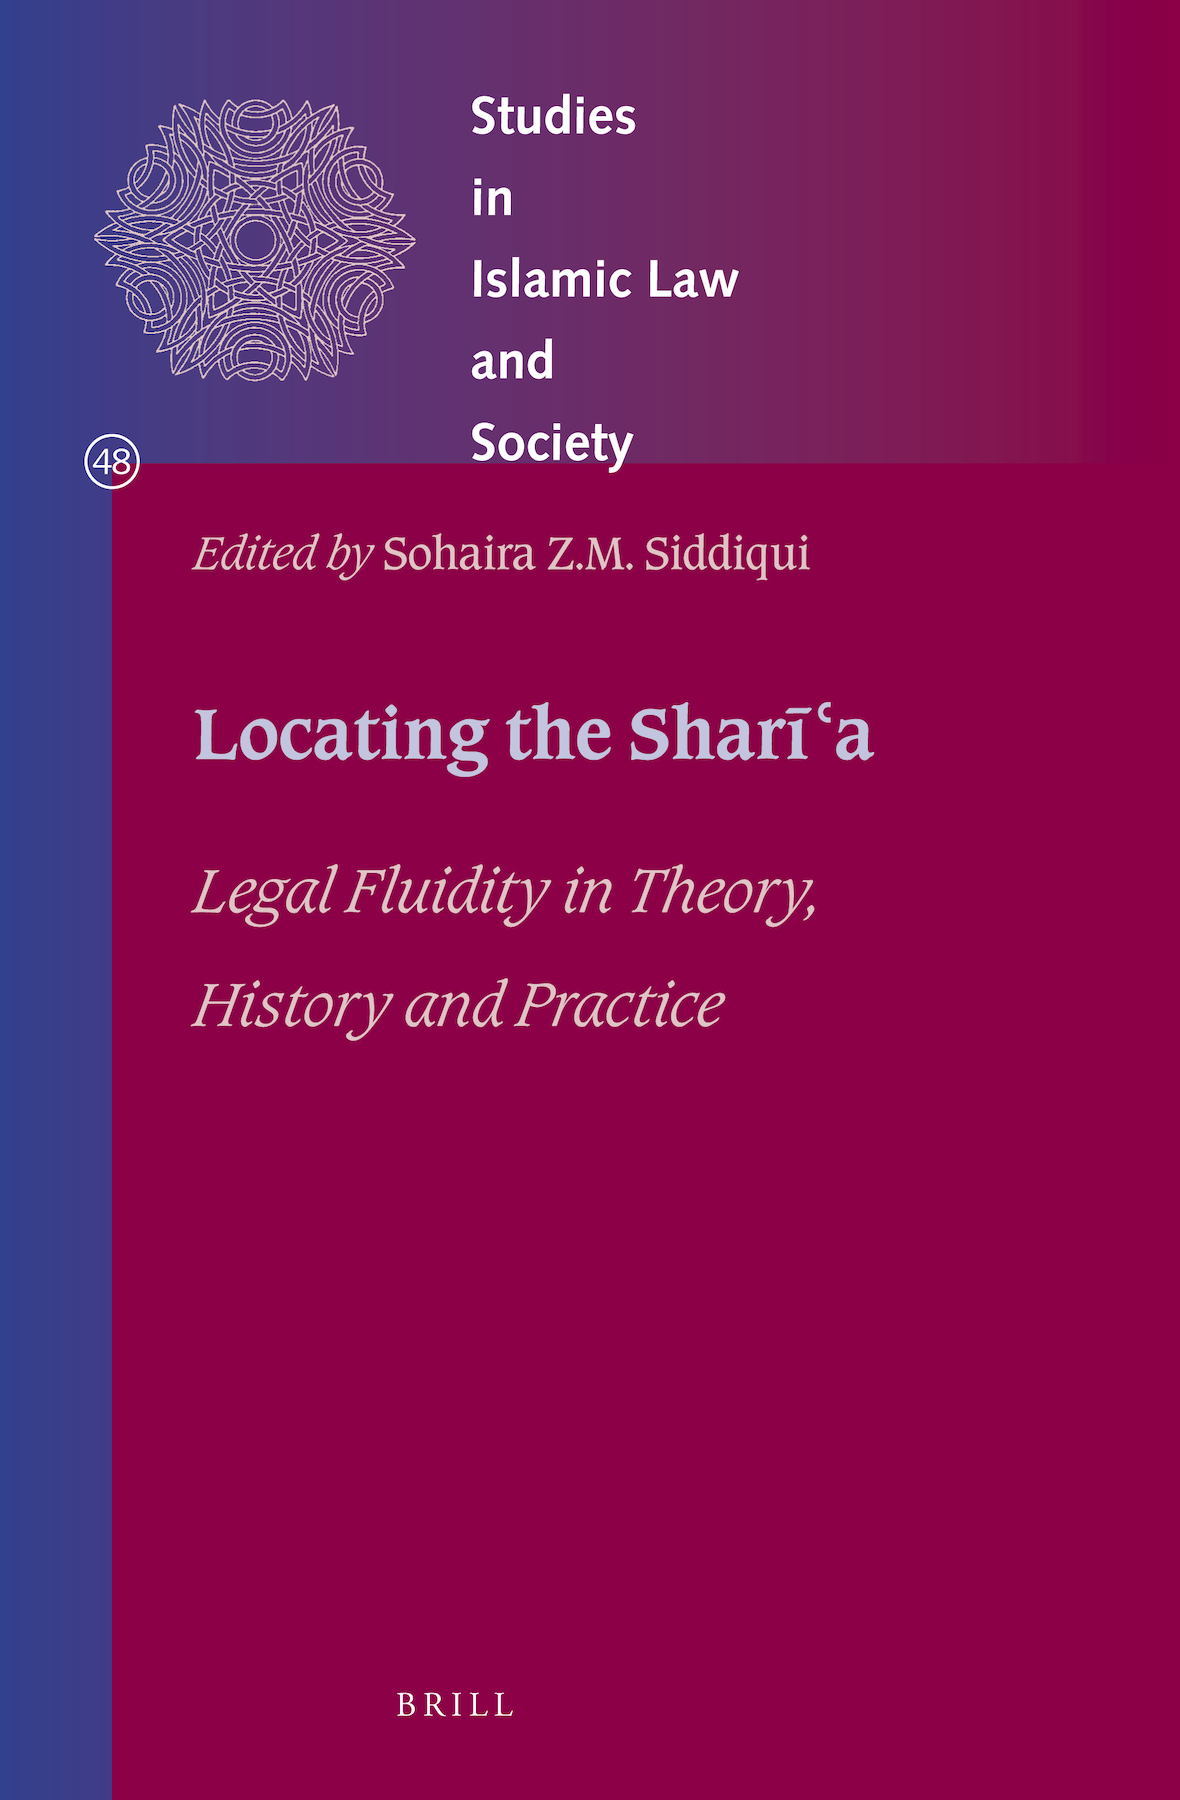 Book cover of Locating the Sharia by Sohaira Siddiqui